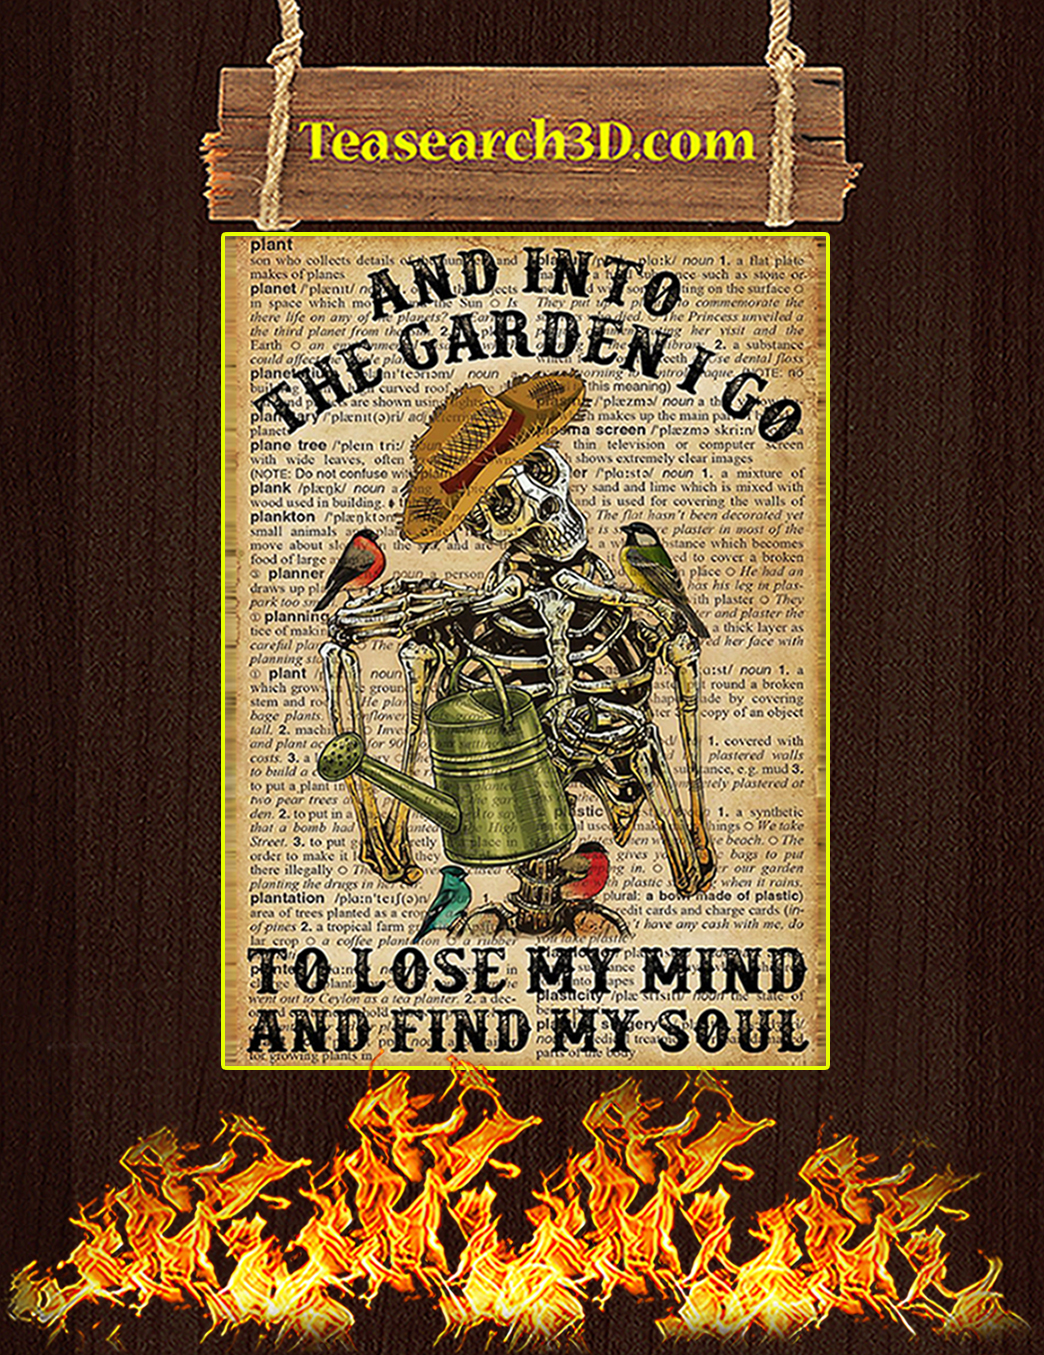 Skeleton And into the garden I go poster A1